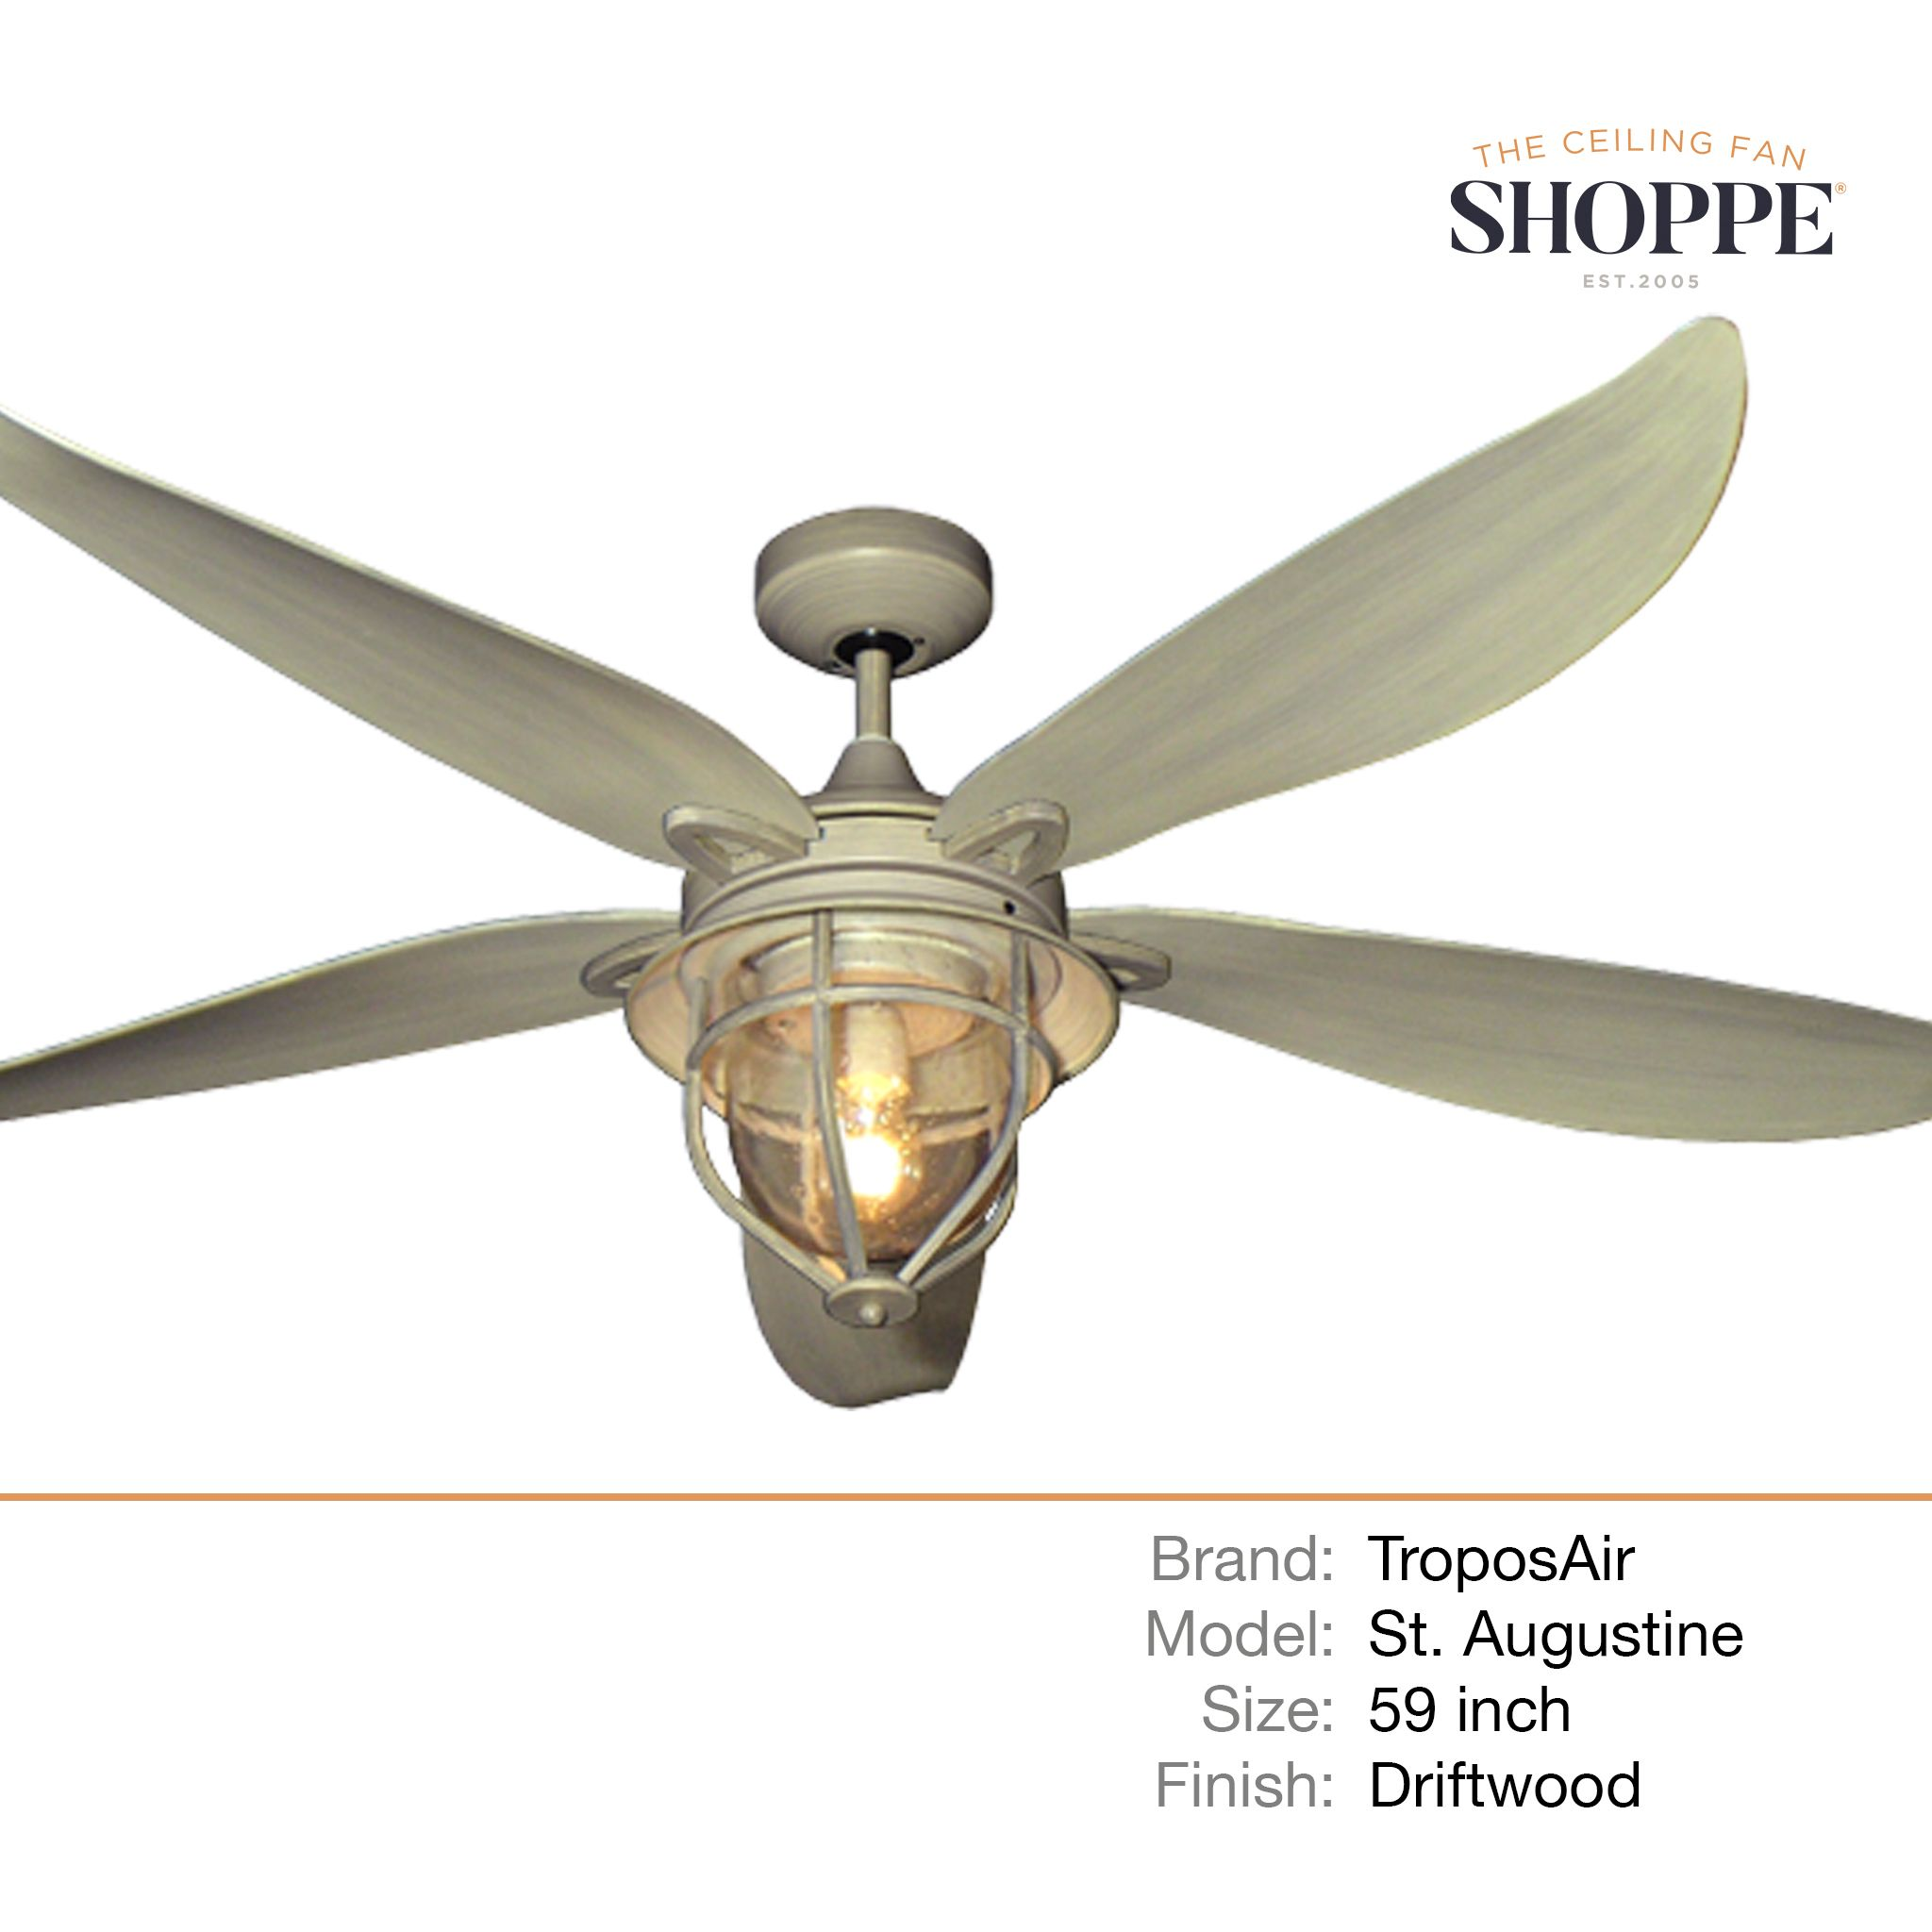 Pin On St Augustine Ceiling Fan By Troposair